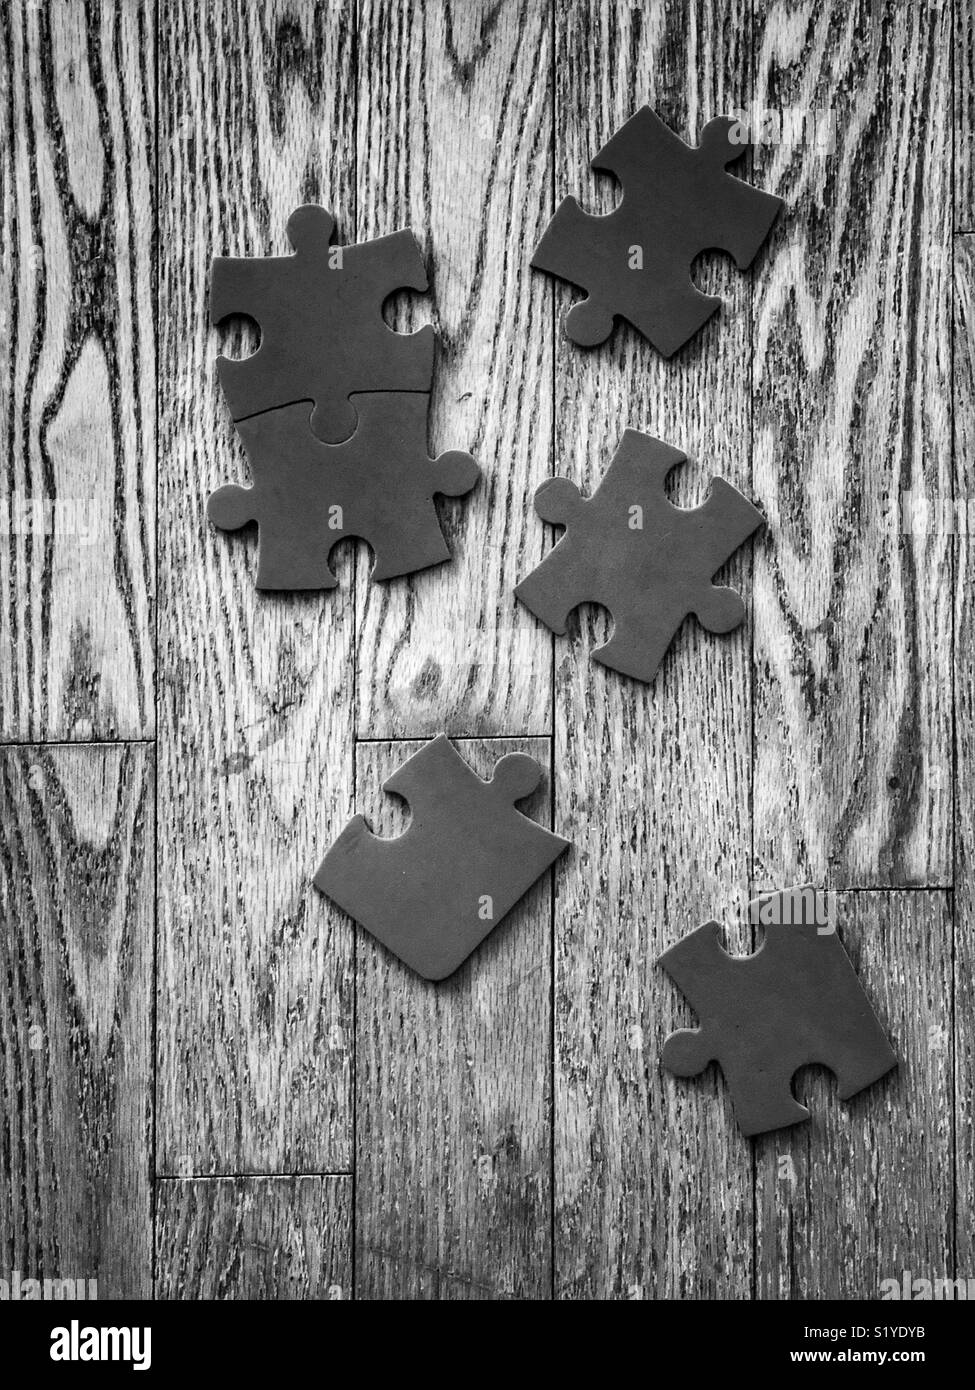 Six Plain Puzzle Pieces On A Wooden Floor In Black And White Stock